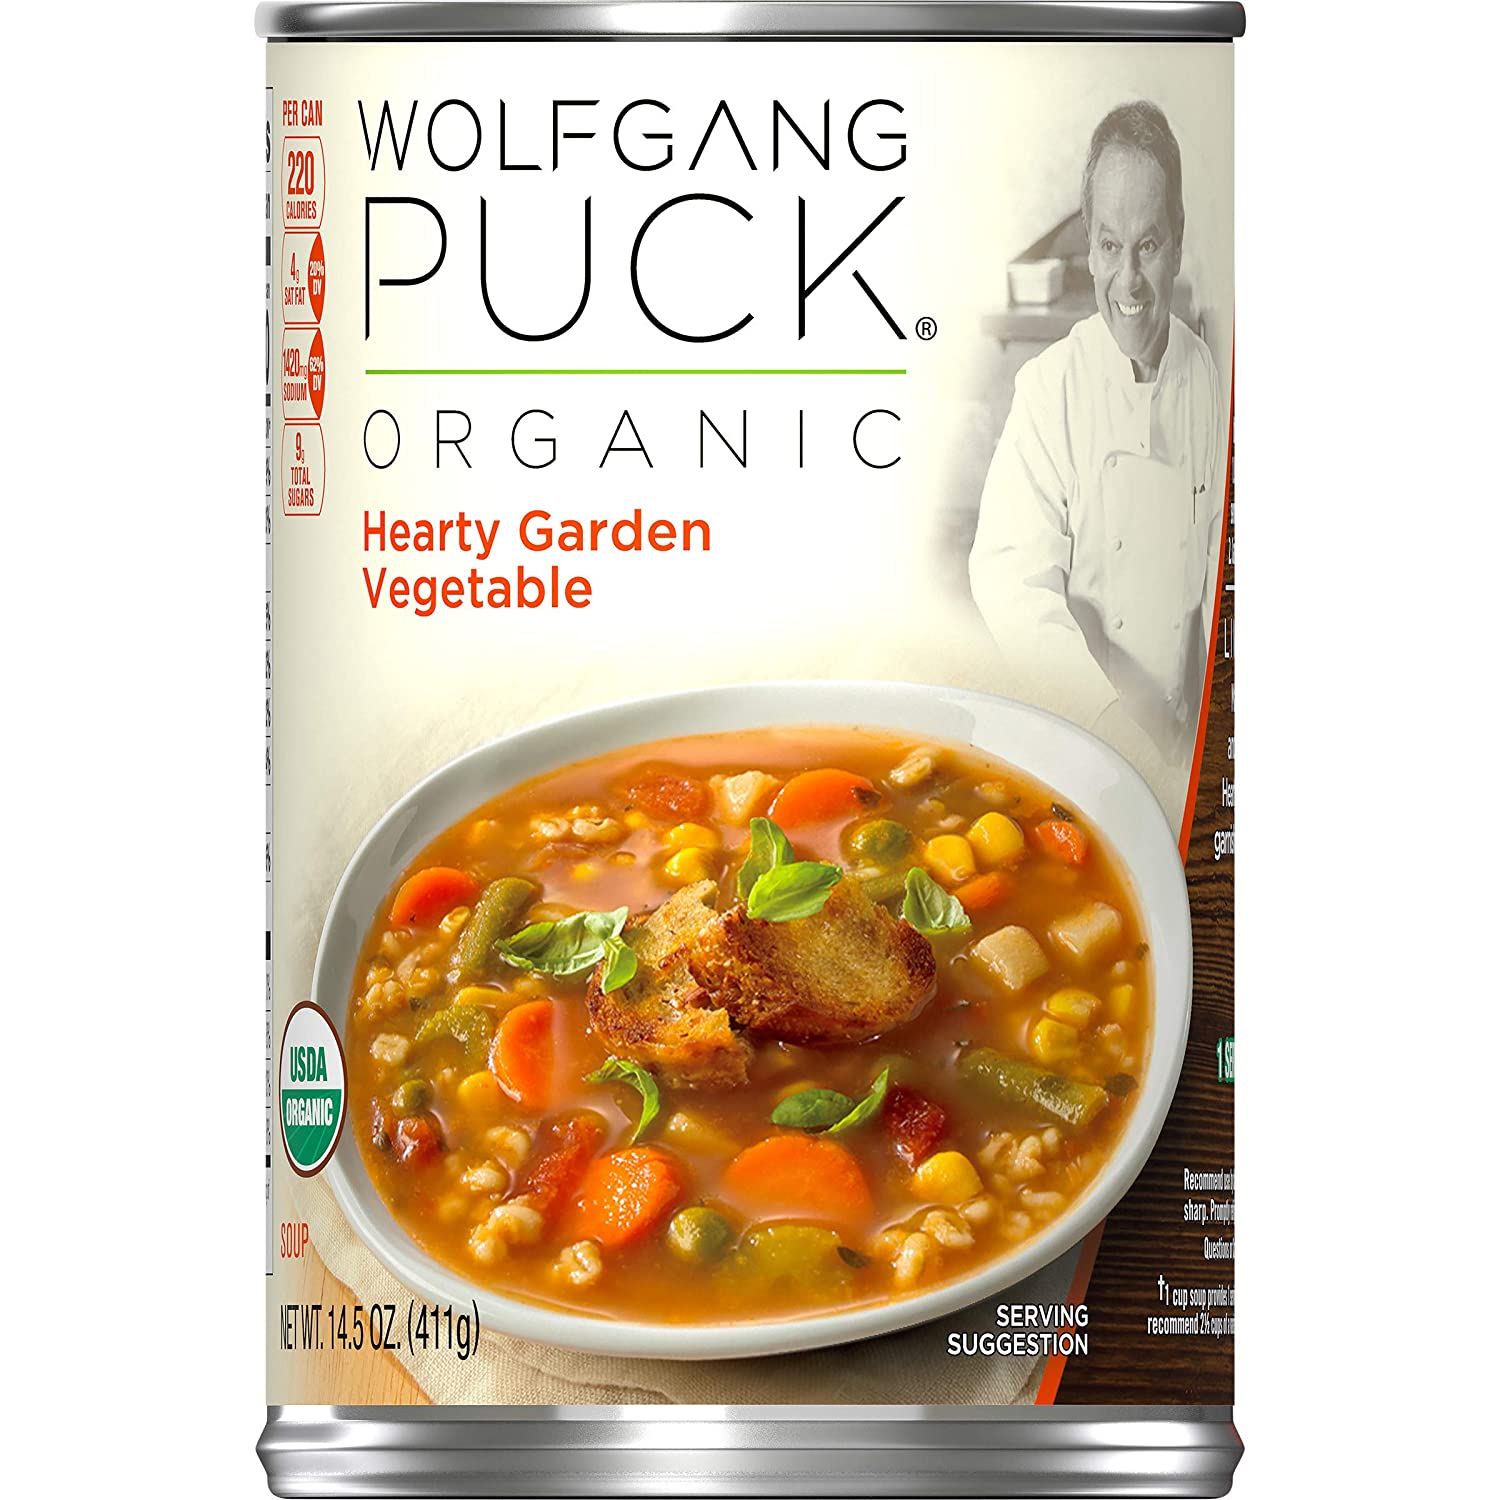 Top 10 Best Canned Vegetable Soup In 2020 - The Double Check